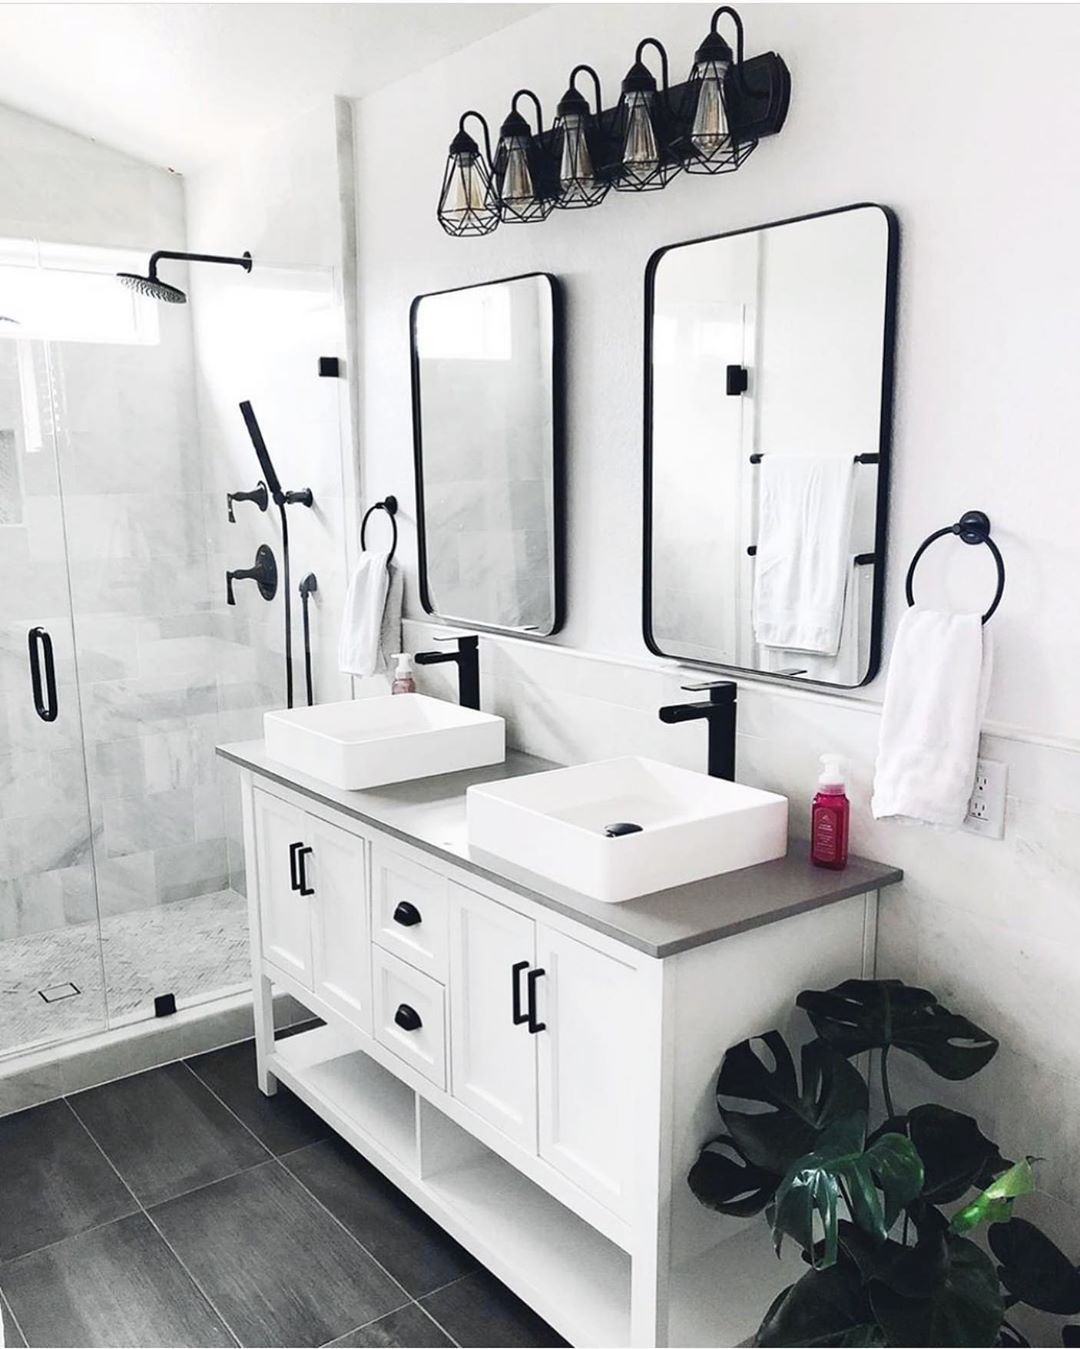 Bathrooms Of Instagram On Instagram Matte Black Yes Please Check Out Vigoindustries To Get Your M Matte Black Bathroom Fixtures Bathroom Vanity Bathroom